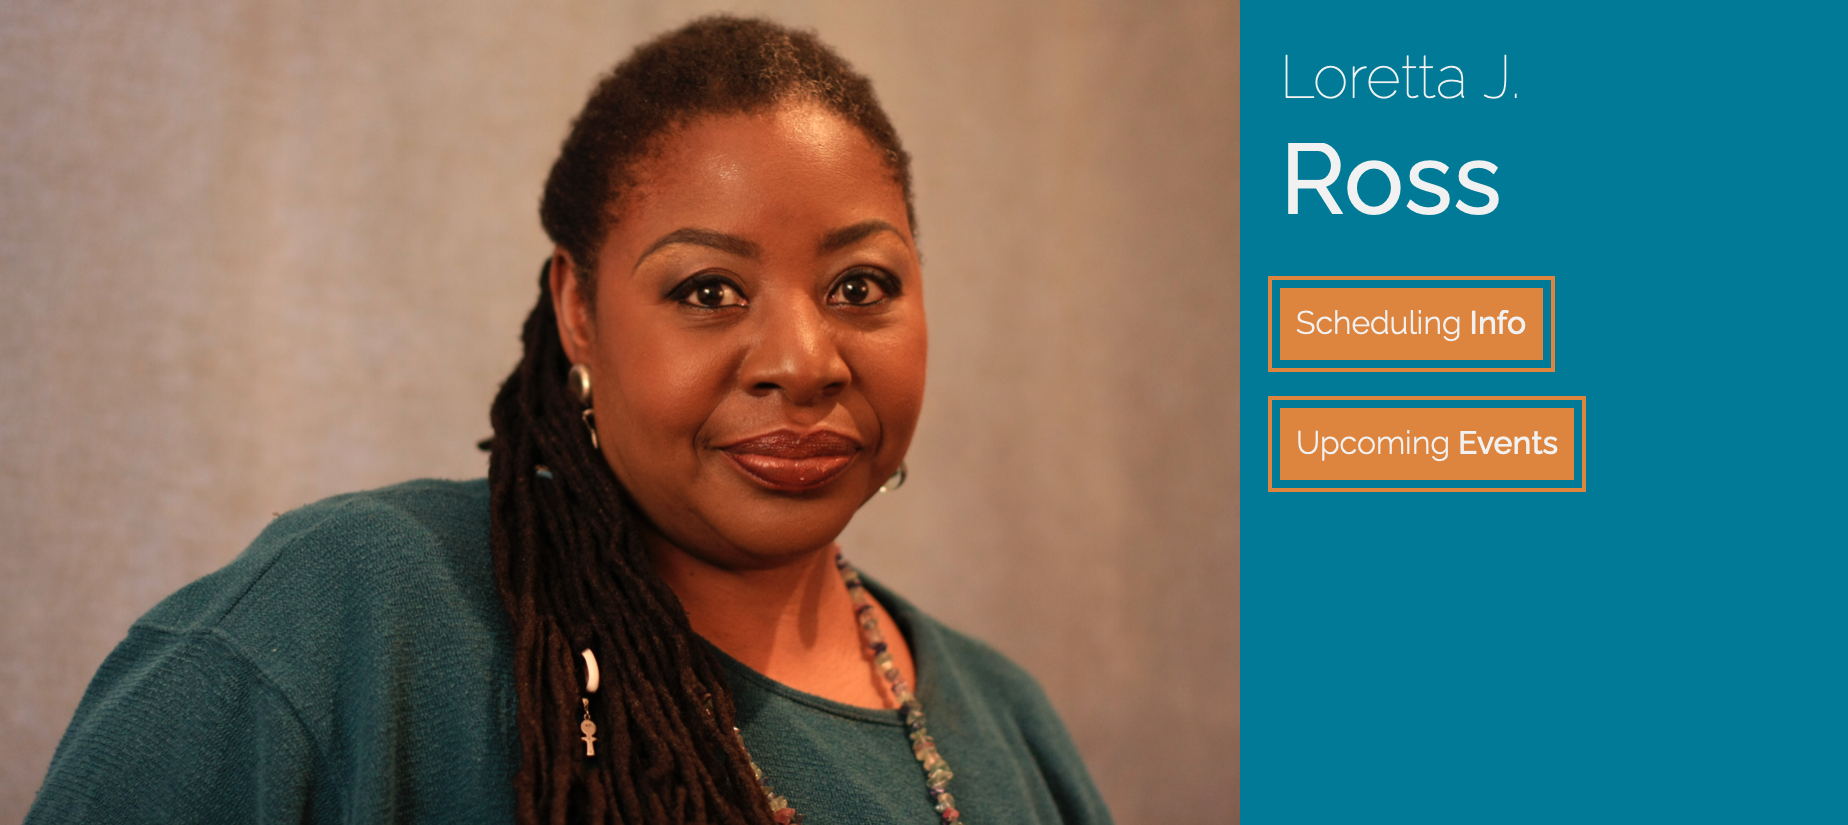 Ross's talk is available to watch for $5.00. Image shows a profile picture from Creative Commons of Loretta J. Ross.